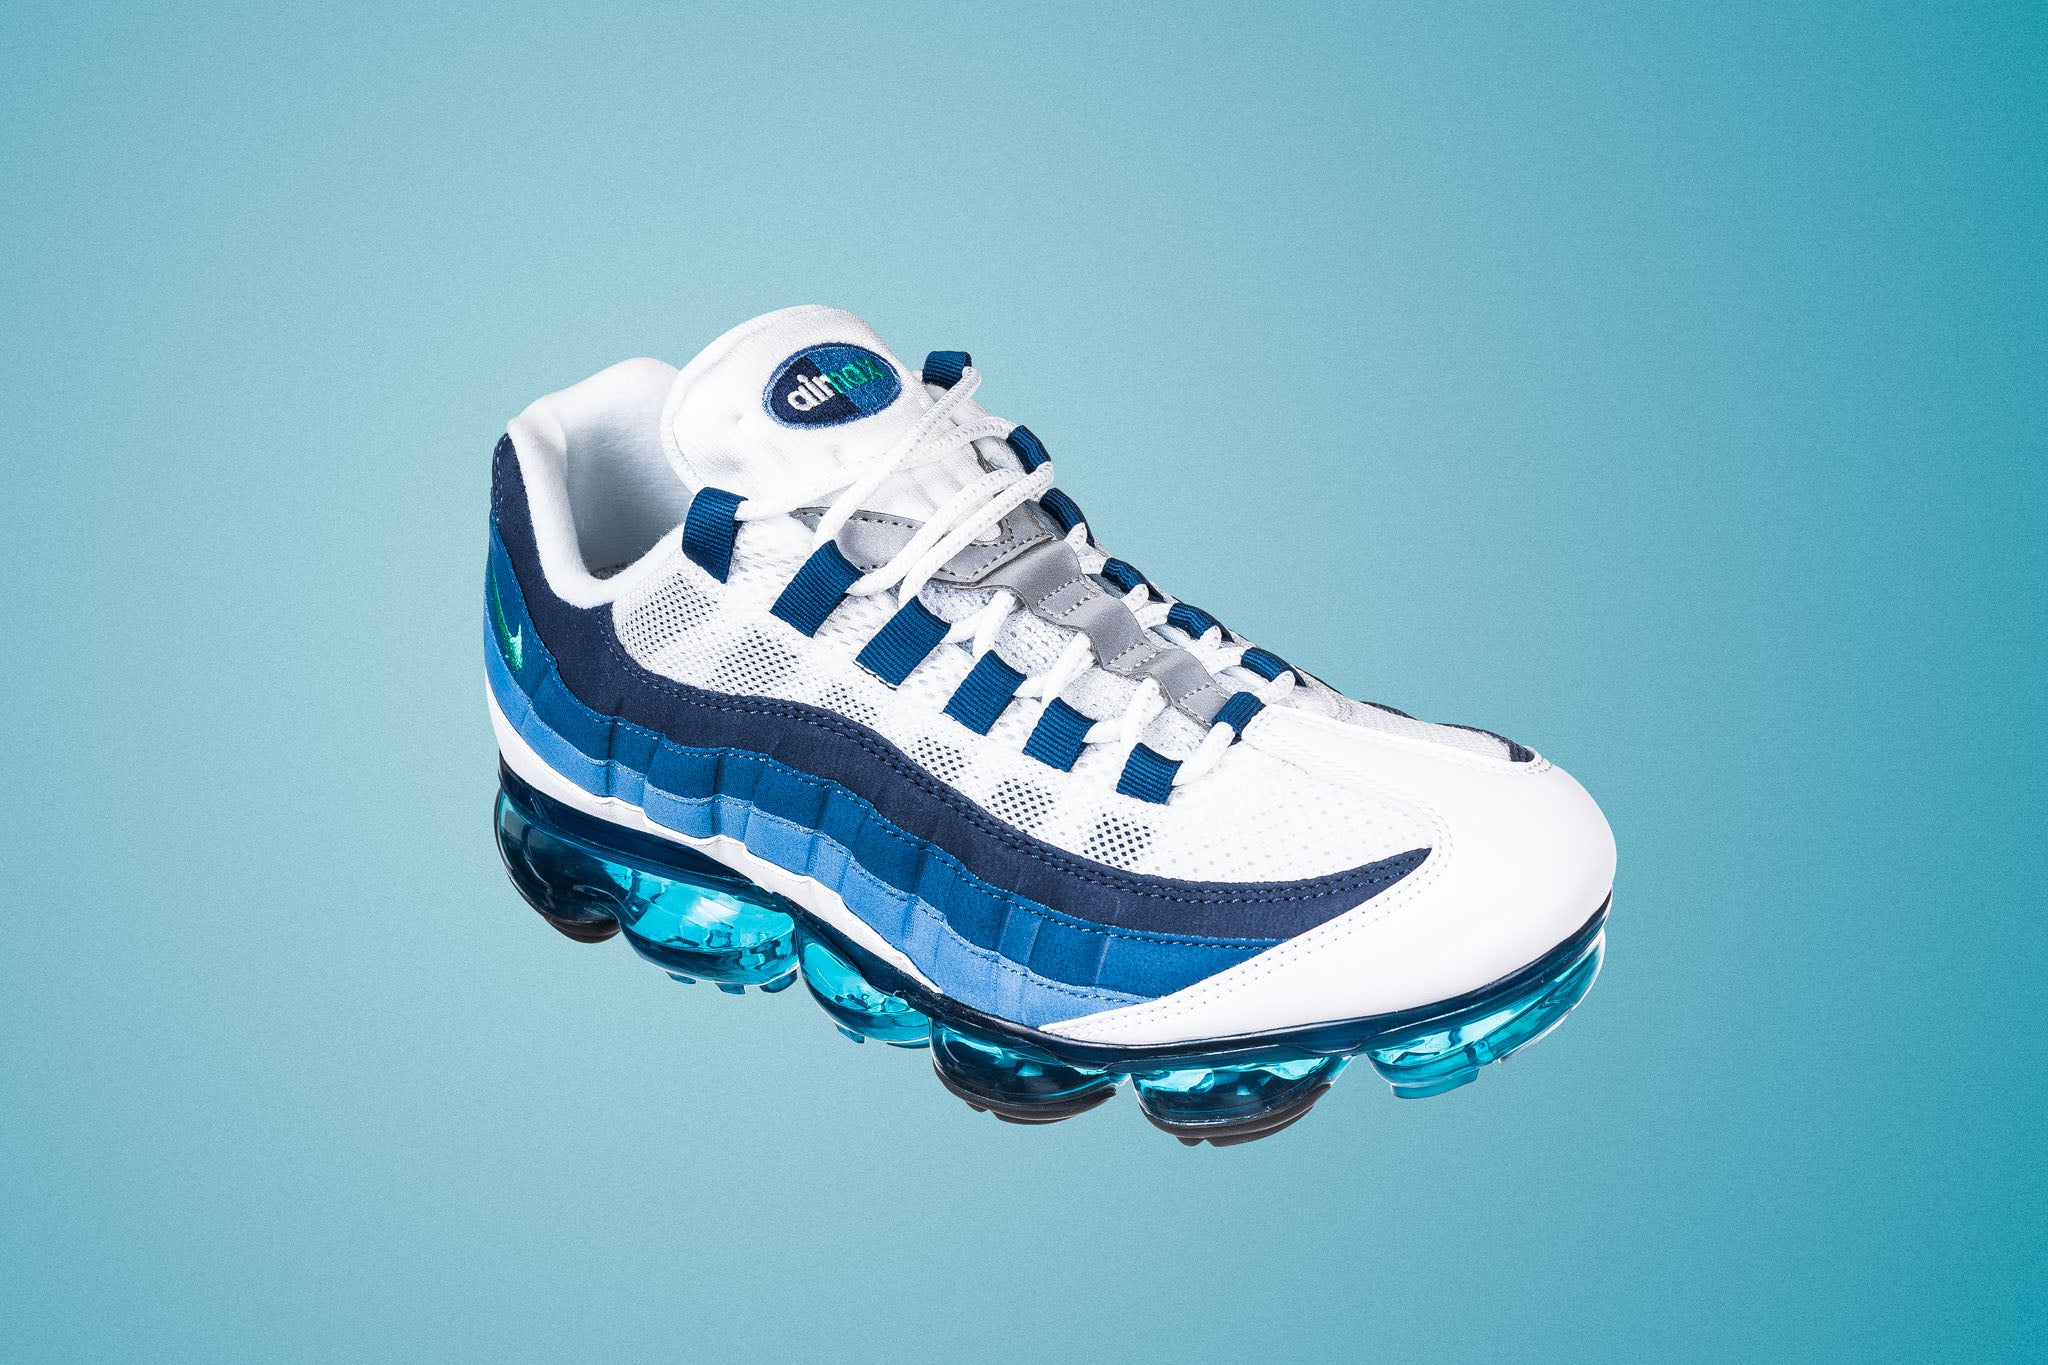 c947ecac8ba4a The Air Vapormax 95 remixes the original Air Max 95 with the Vapormax  cushioning unit decorated with the blue and white highlights along the  outsole tread.